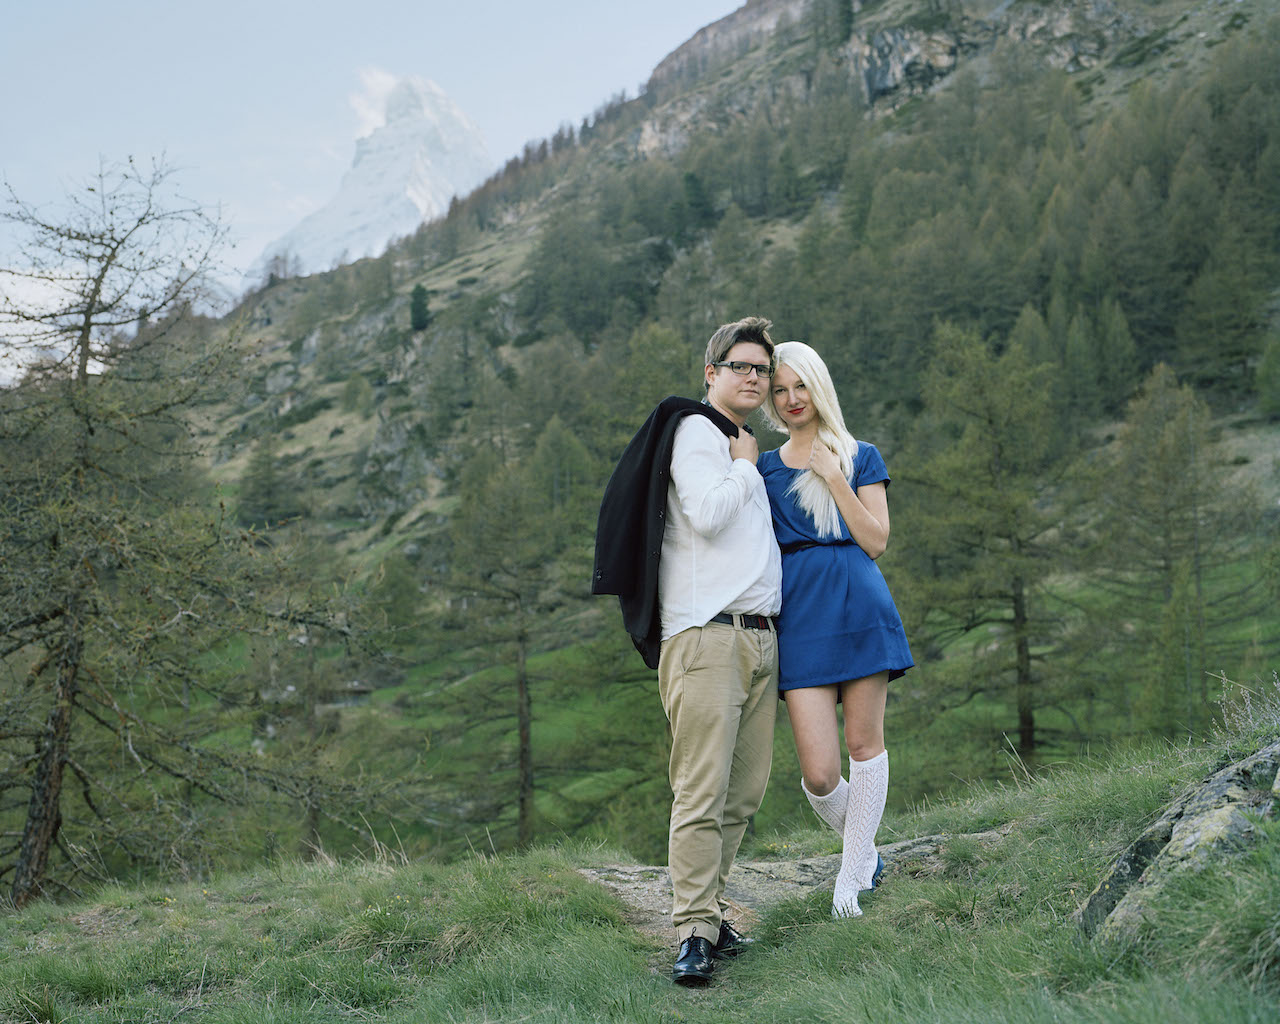 Demande en marriage (Marriage proposal), from the series Ekaterina, 2012 © Romain Mader / ECAL